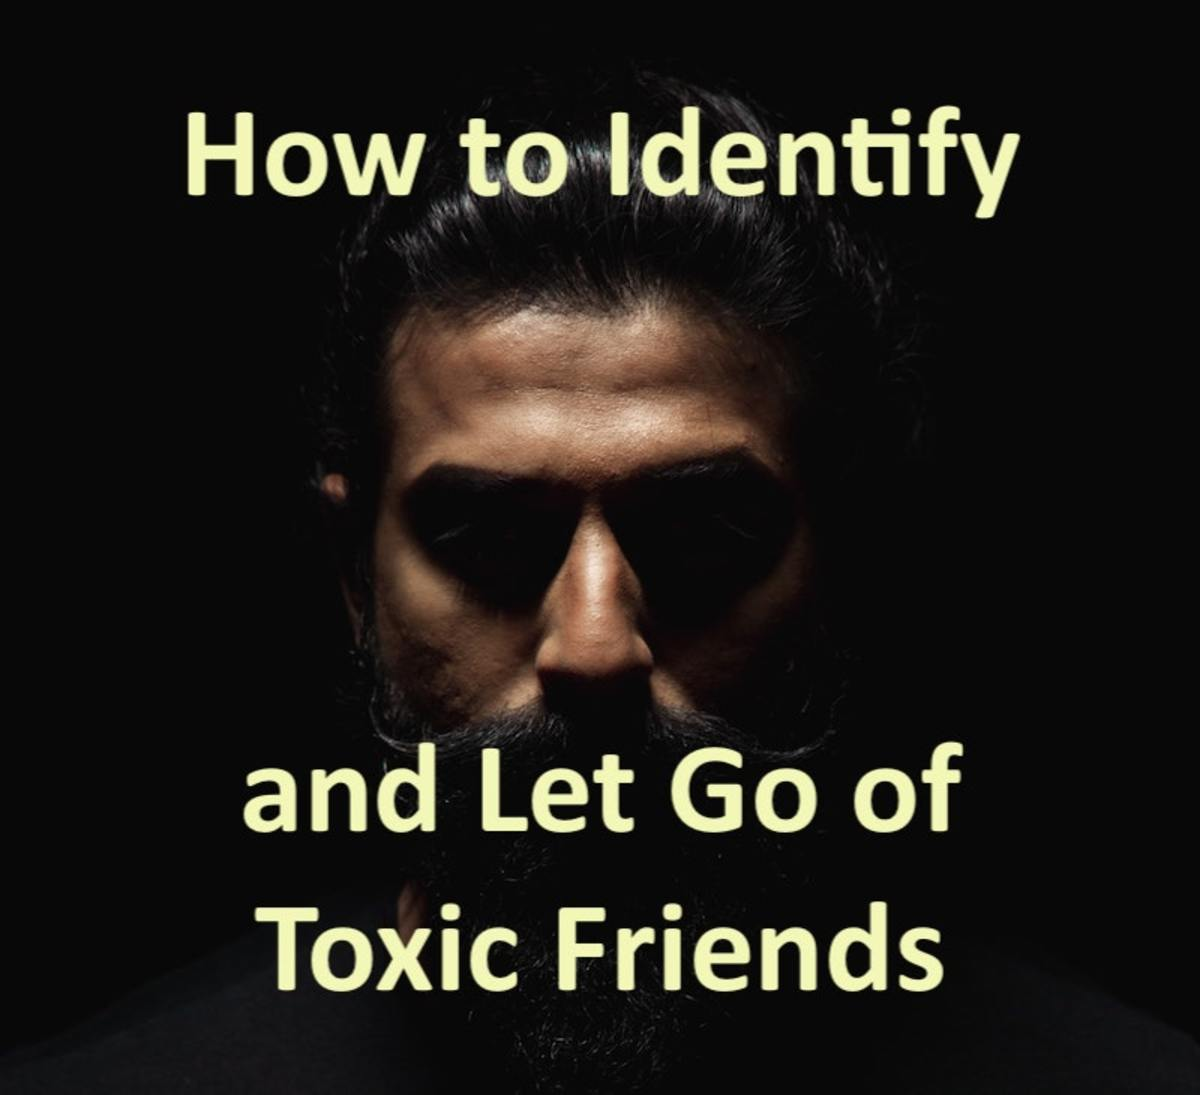 How to Identify and Let Go of Toxic Friends